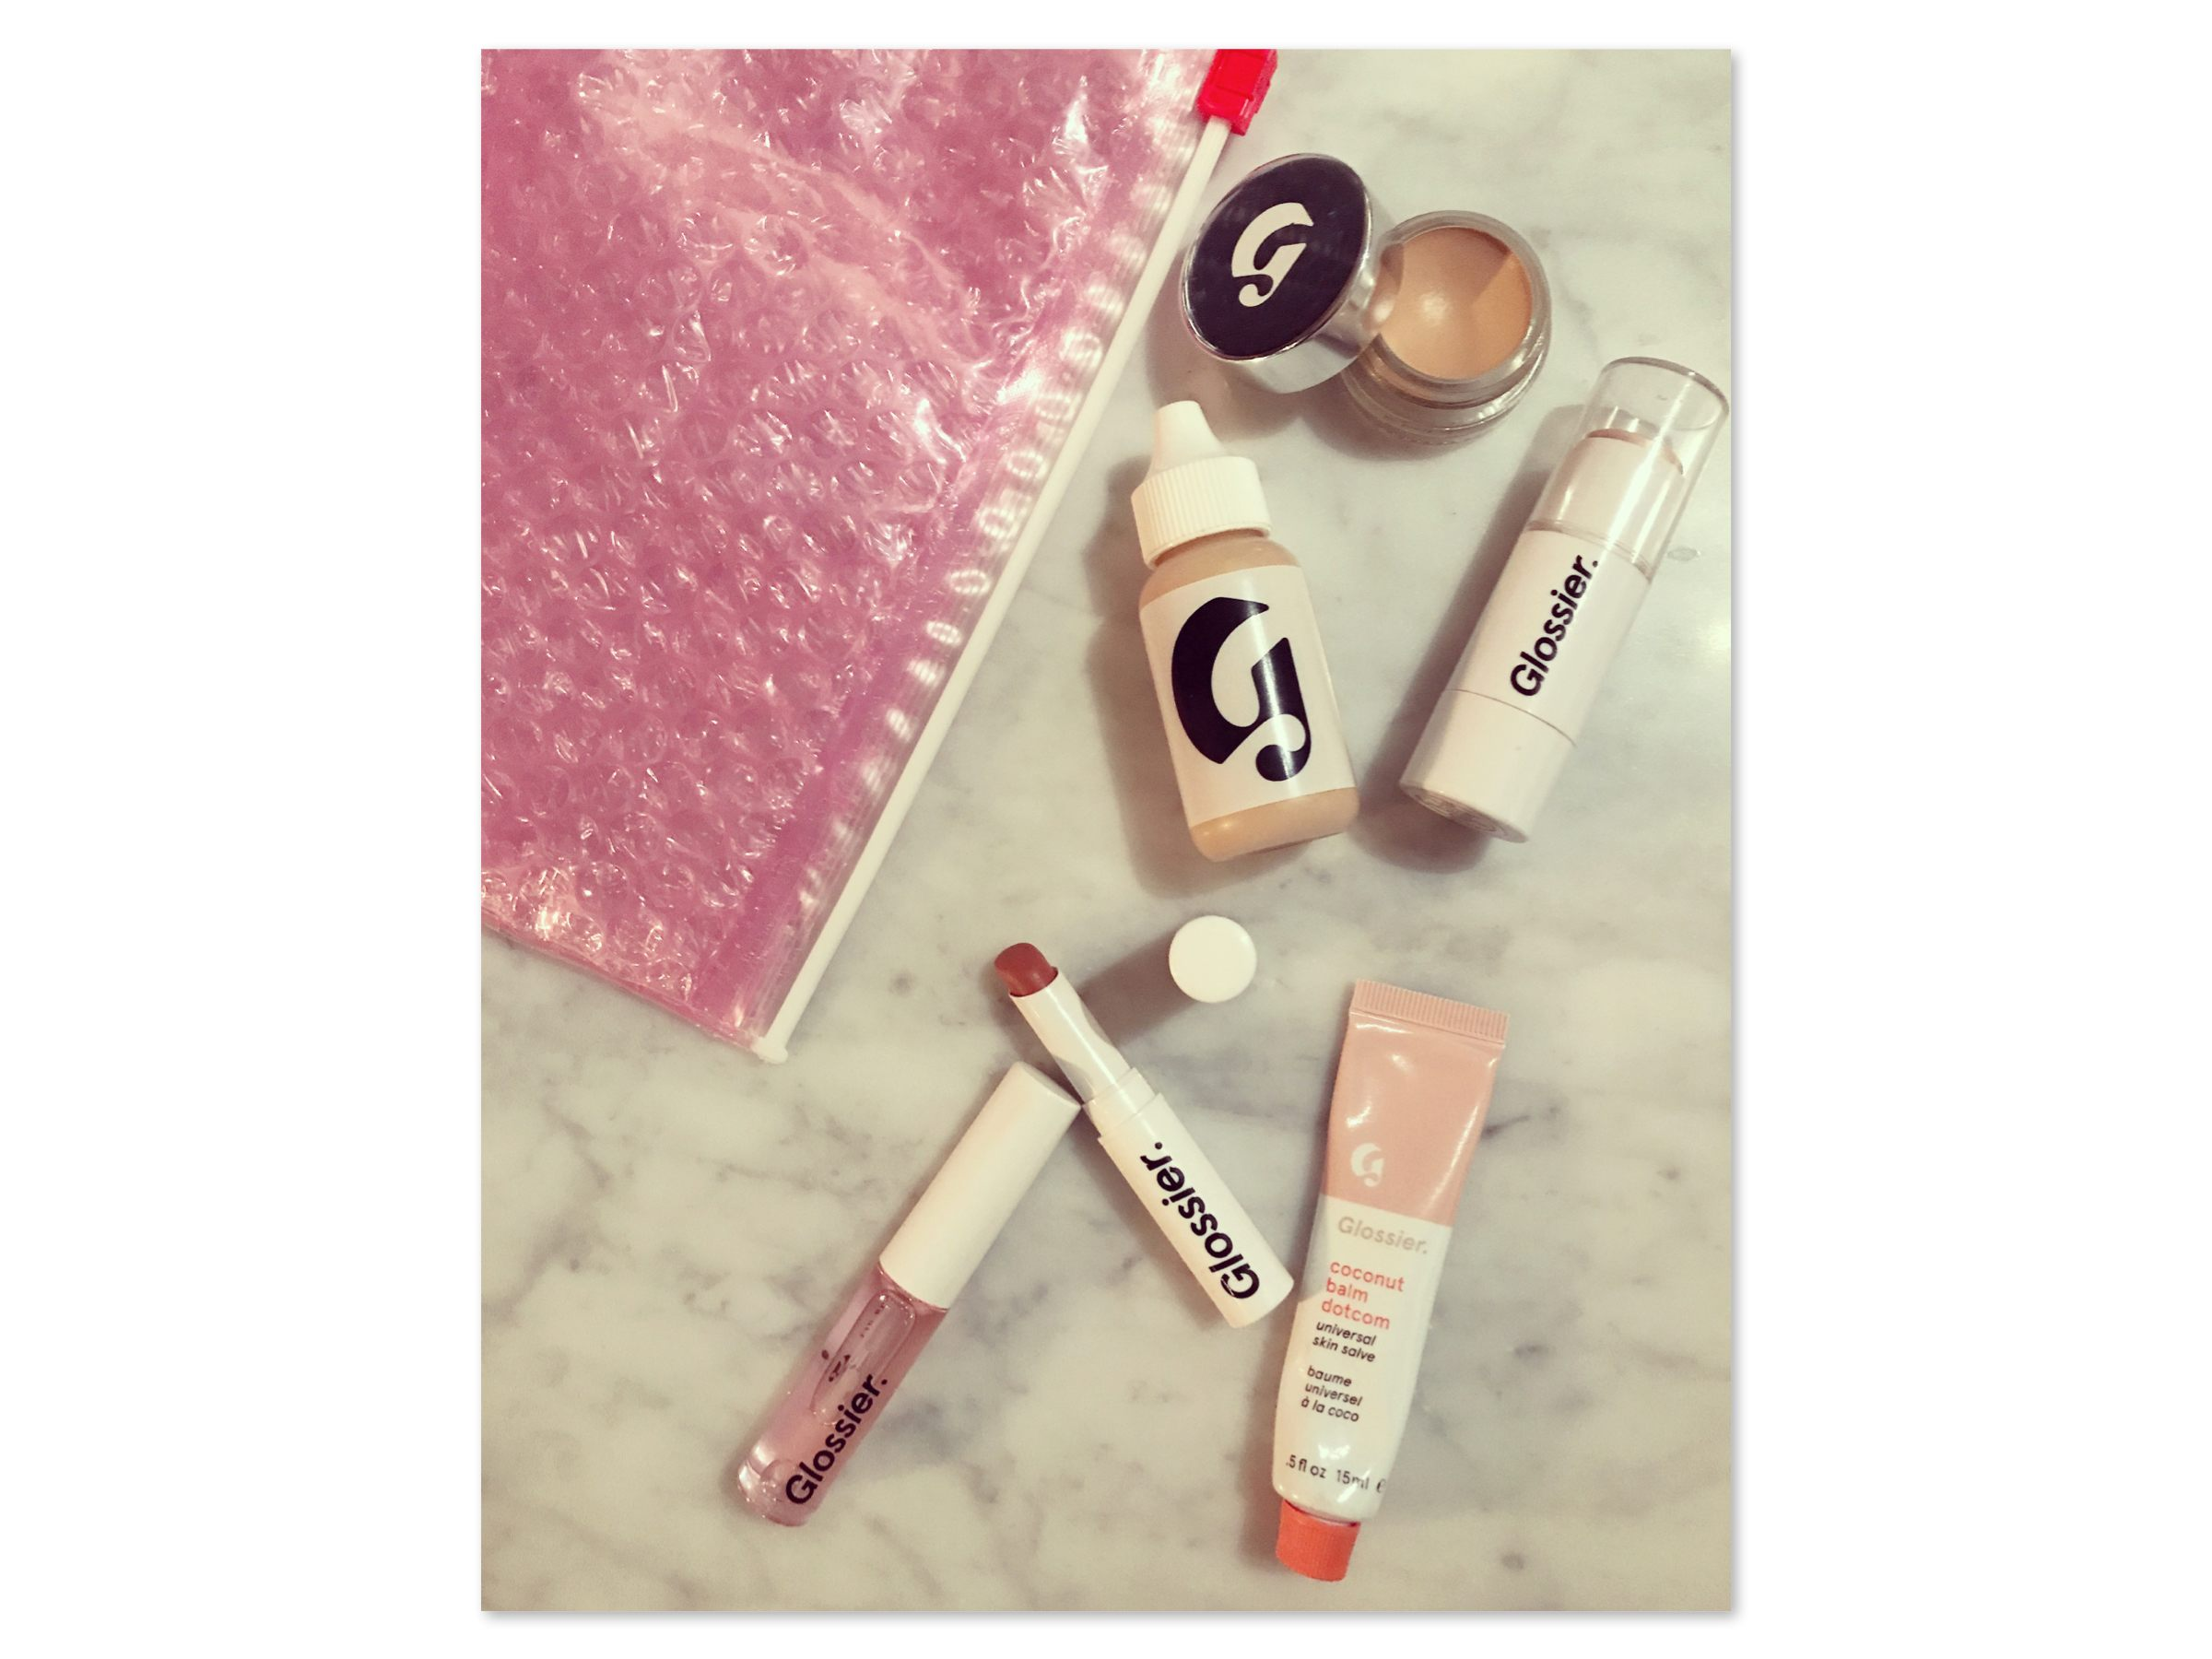 Glossier balm dotcom Haloscope Perfecting Skin Tint Stretch Concealer Lip Gloss Generation G